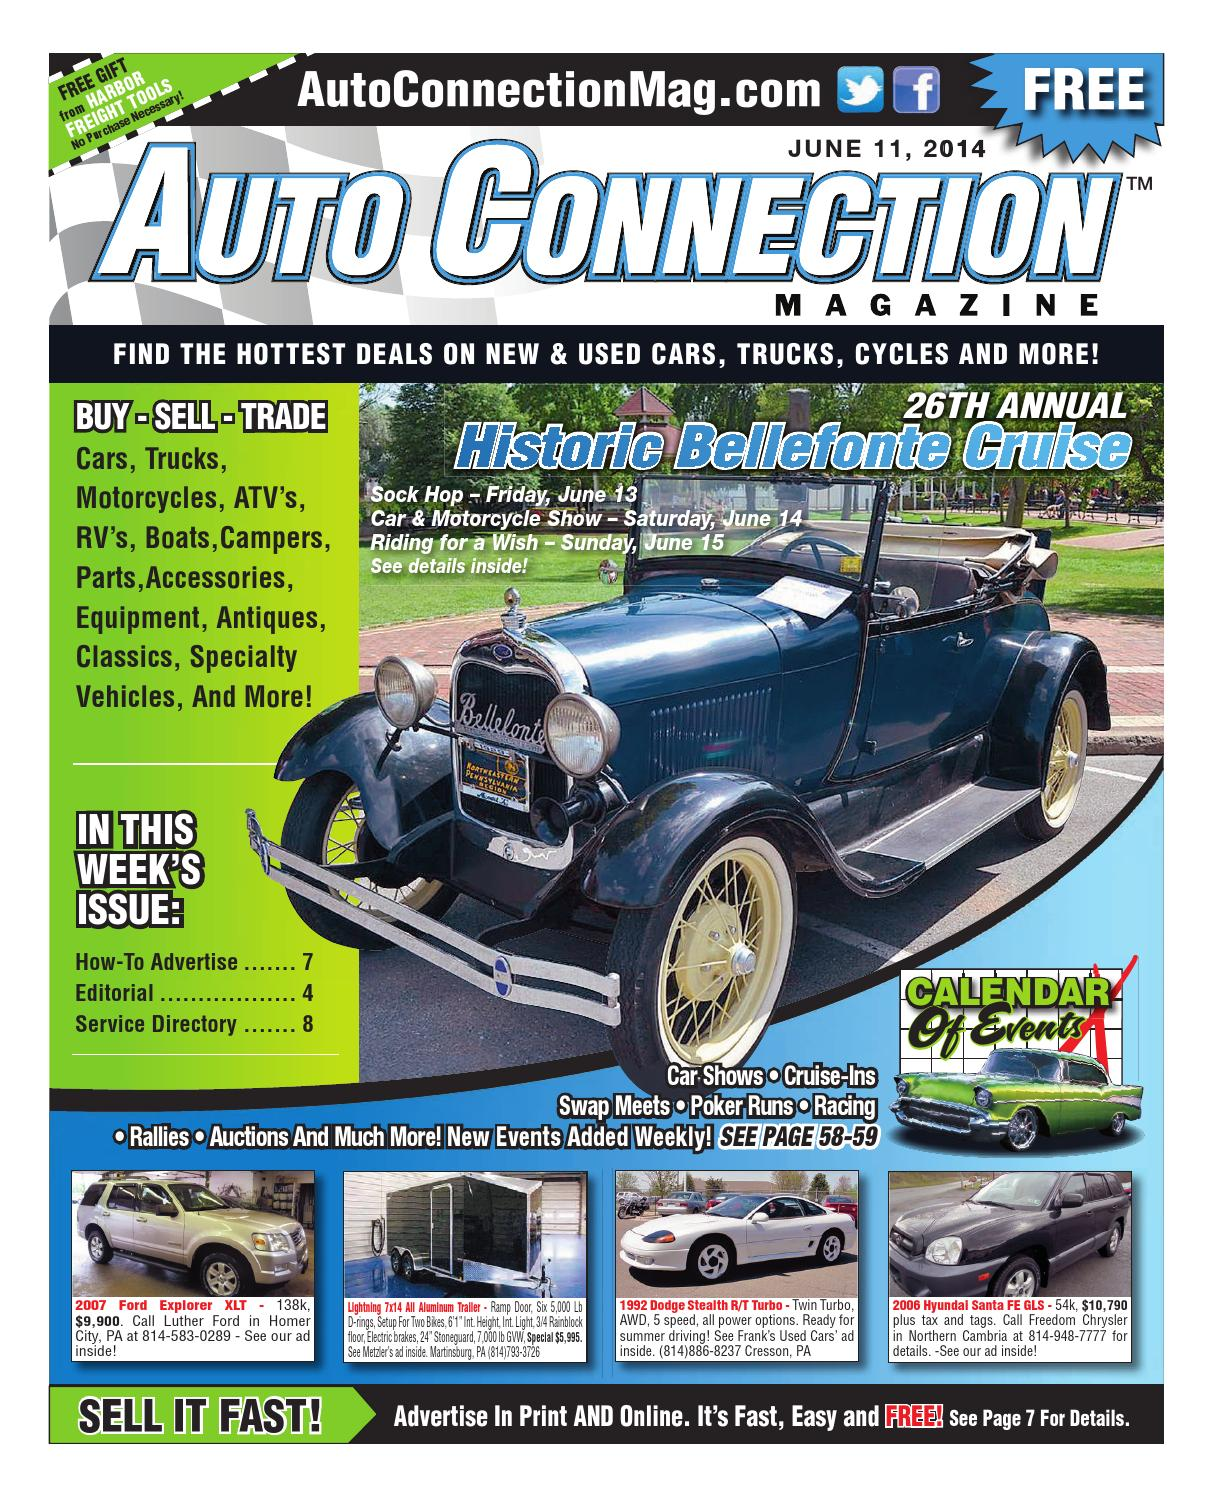 06 11 14 auto connection magazine by auto connection magazine issuu sciox Choice Image